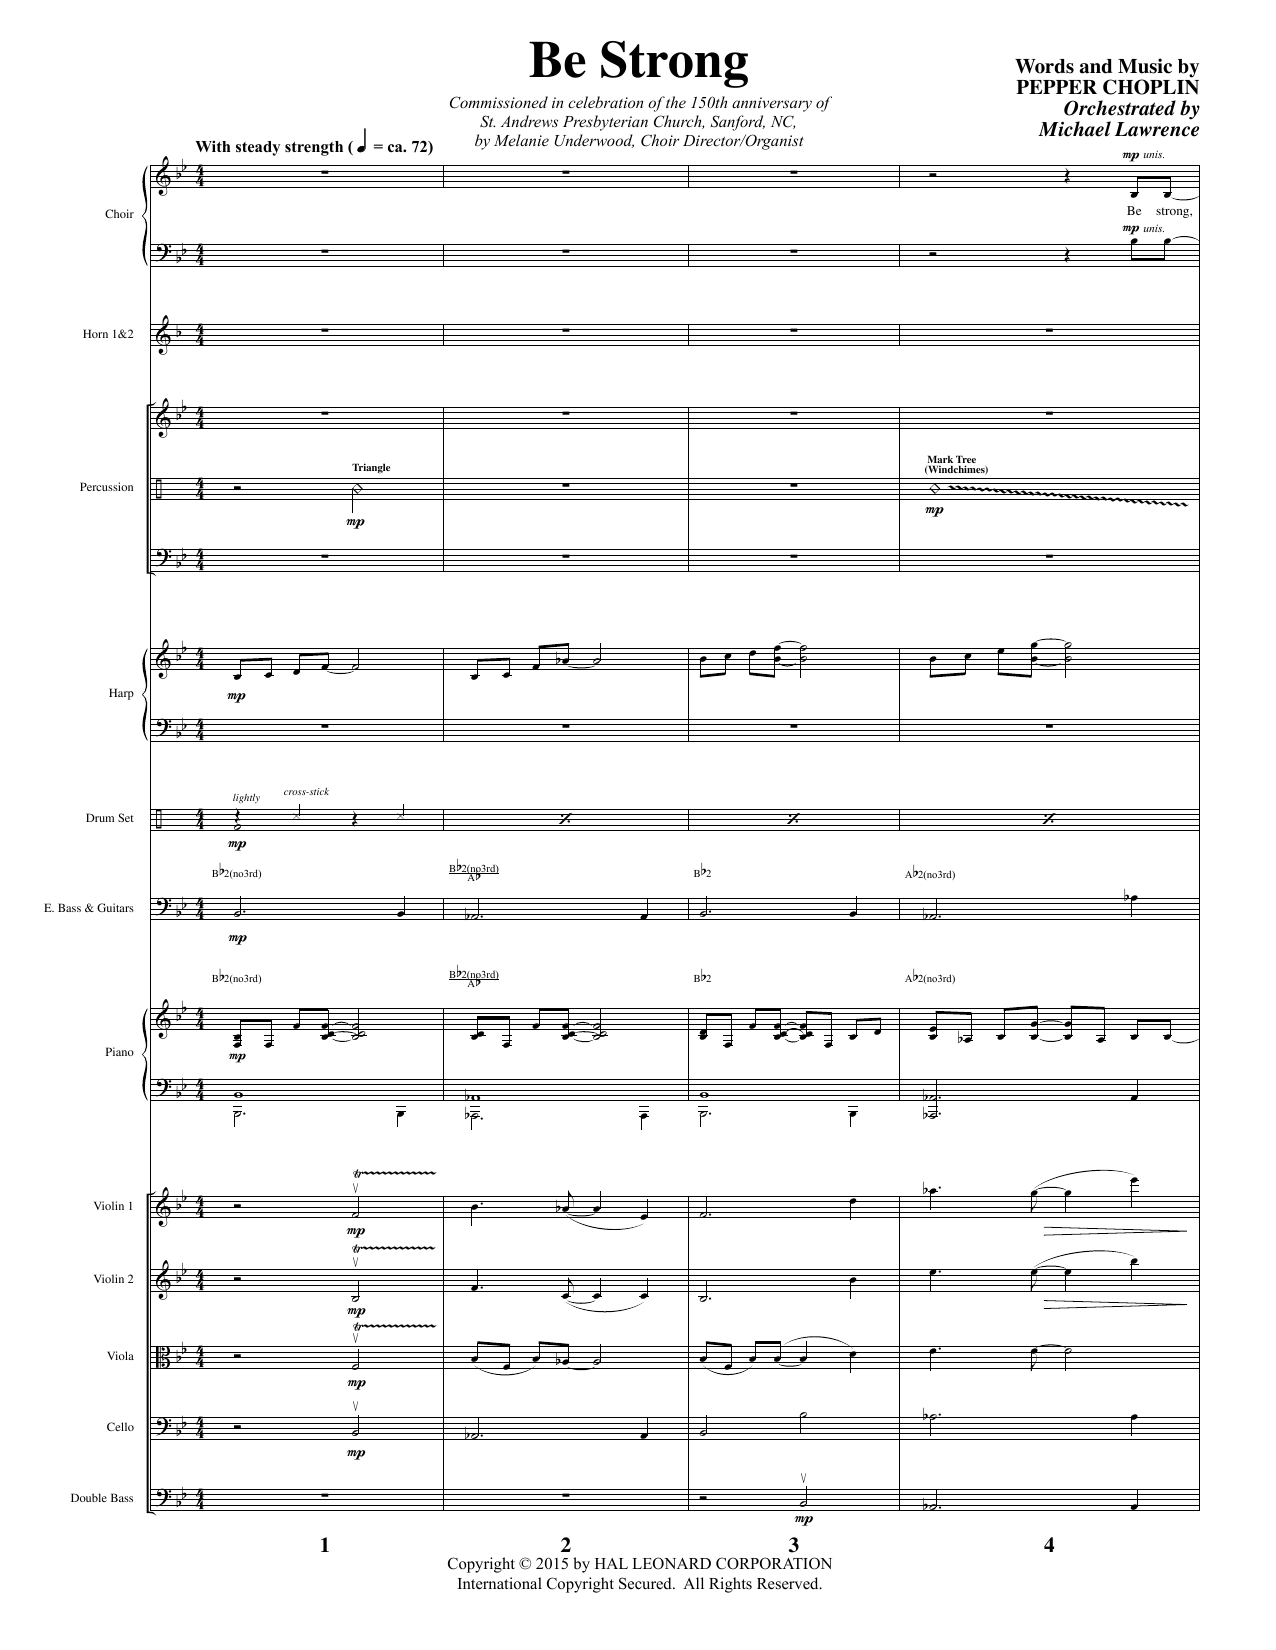 Pepper Choplin Be Strong - Full Score sheet music notes and chords. Download Printable PDF.